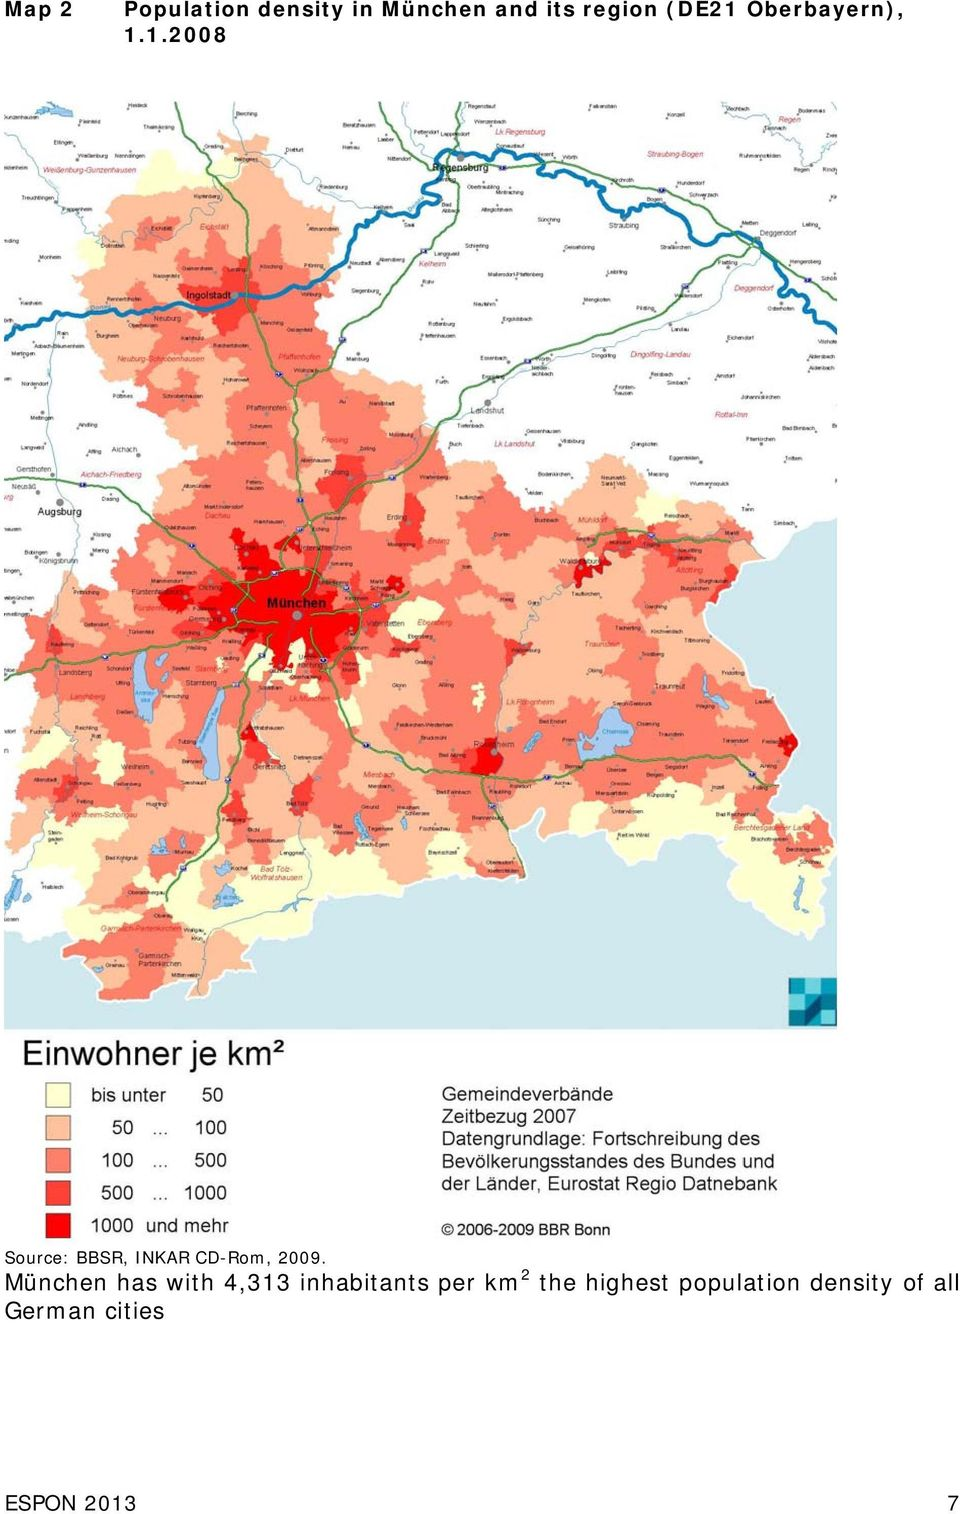 München has with 4,313 inhabitants per km 2 the highest